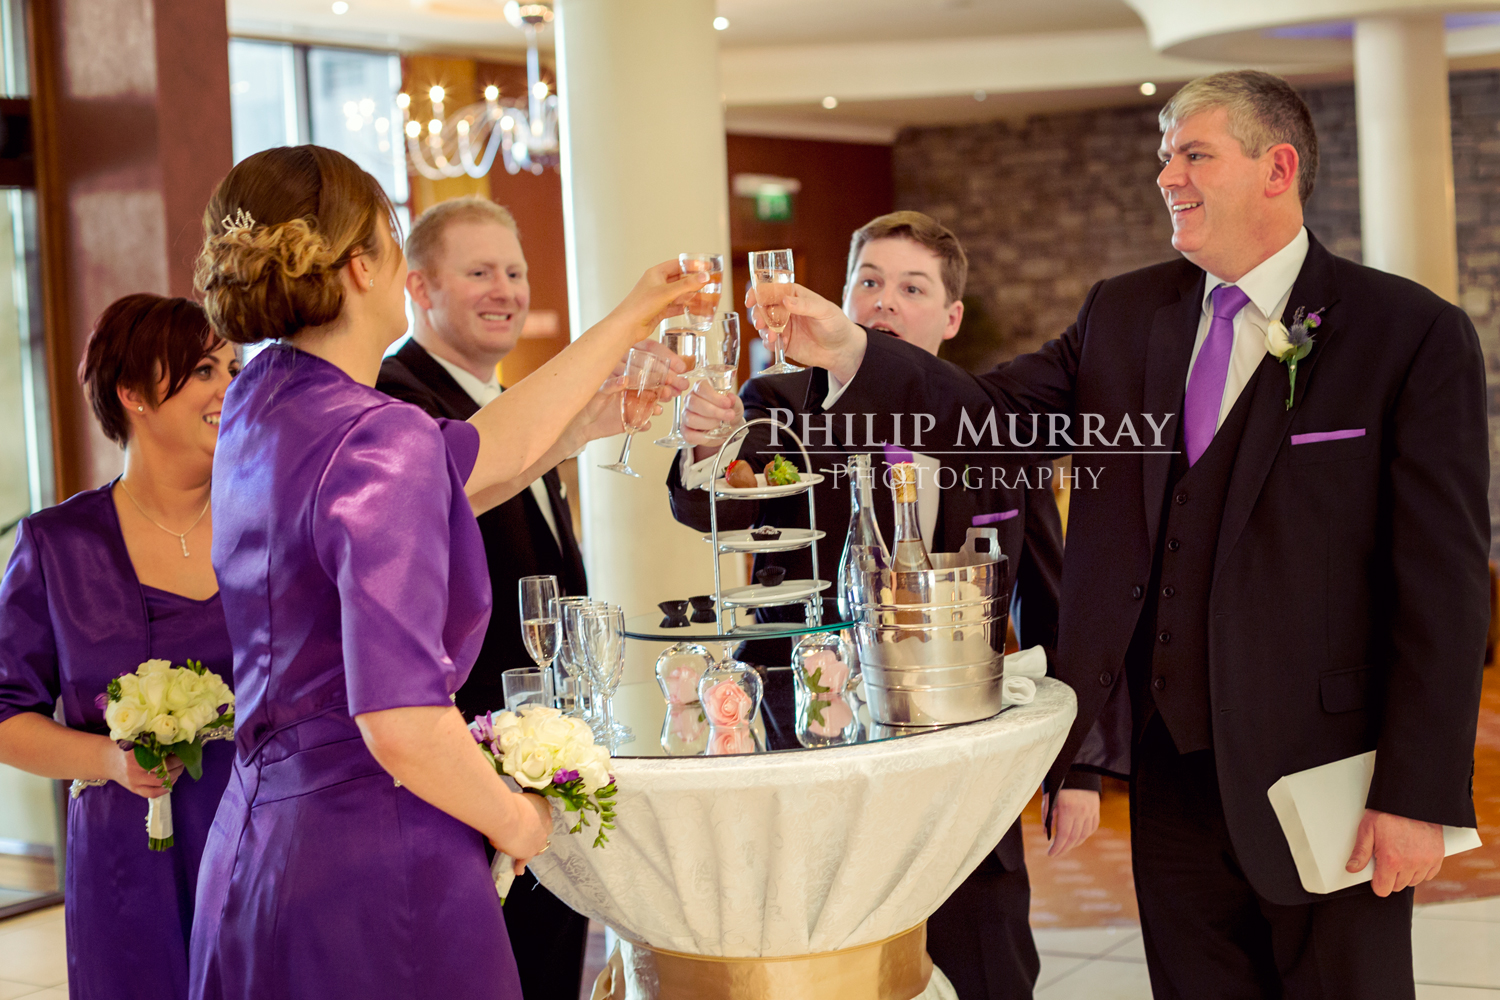 Wedding_E&J_Groom_Bride_Bridesmaid_Groomsman_Cheers_Champagne_Philip_Murray_Photography_Dublin